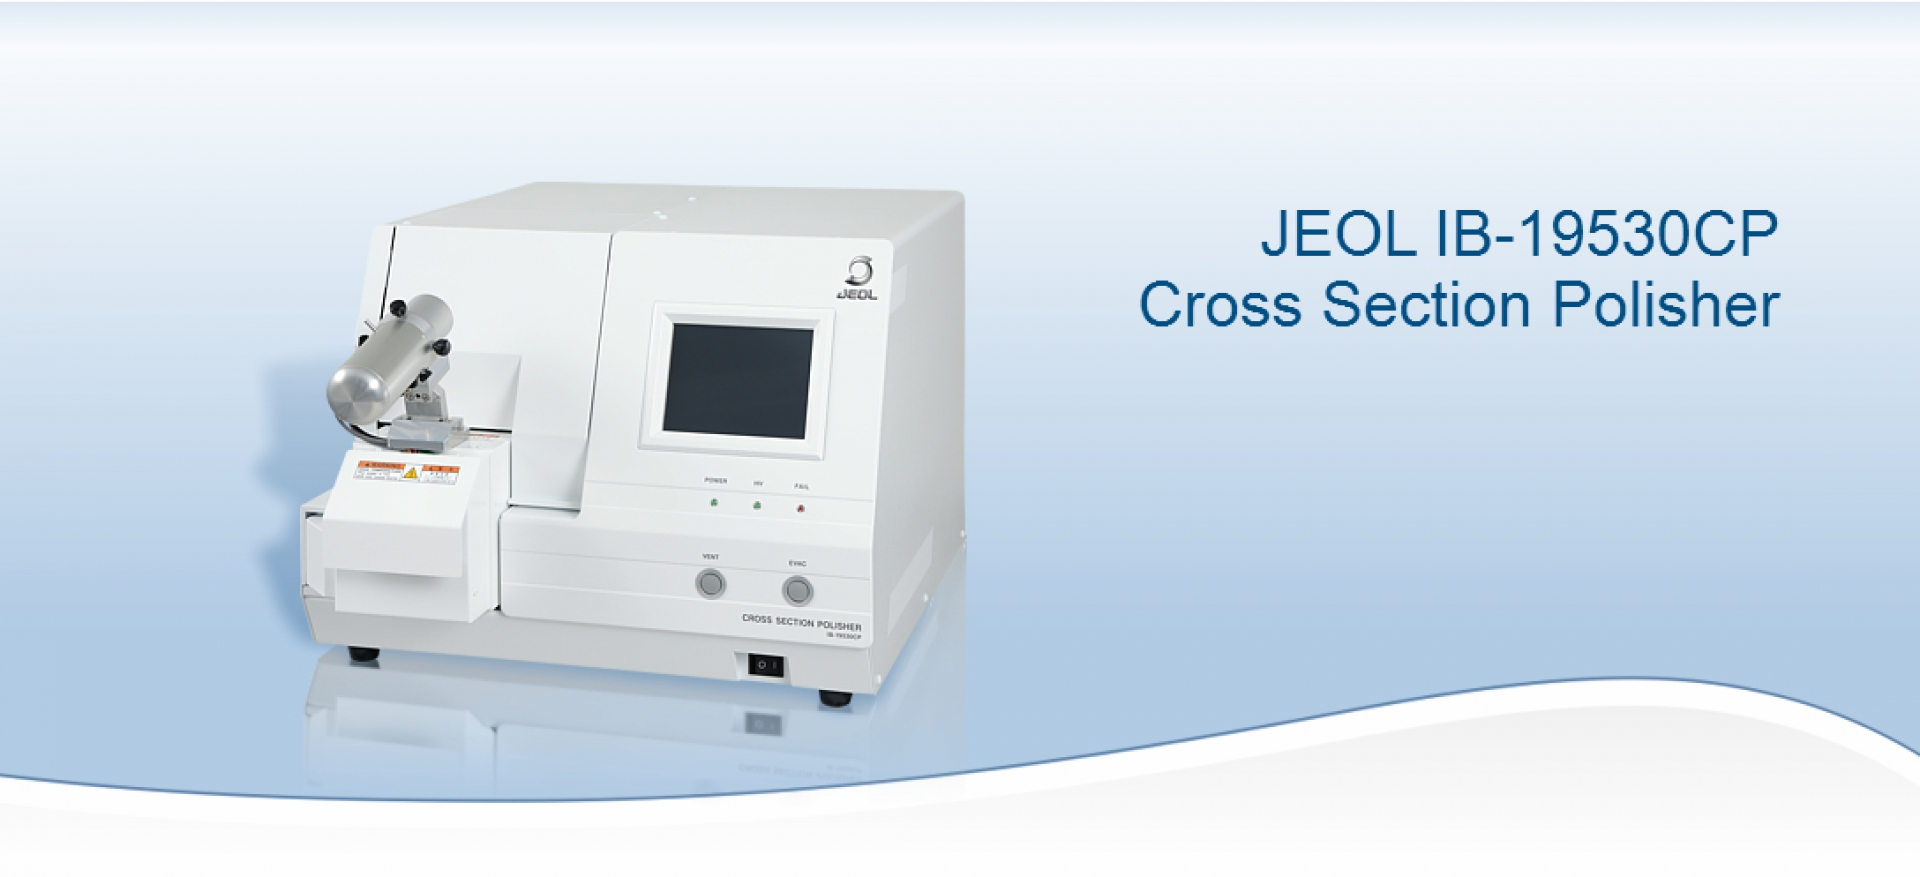 JEOL IB-19530CP Cross Section Polisher